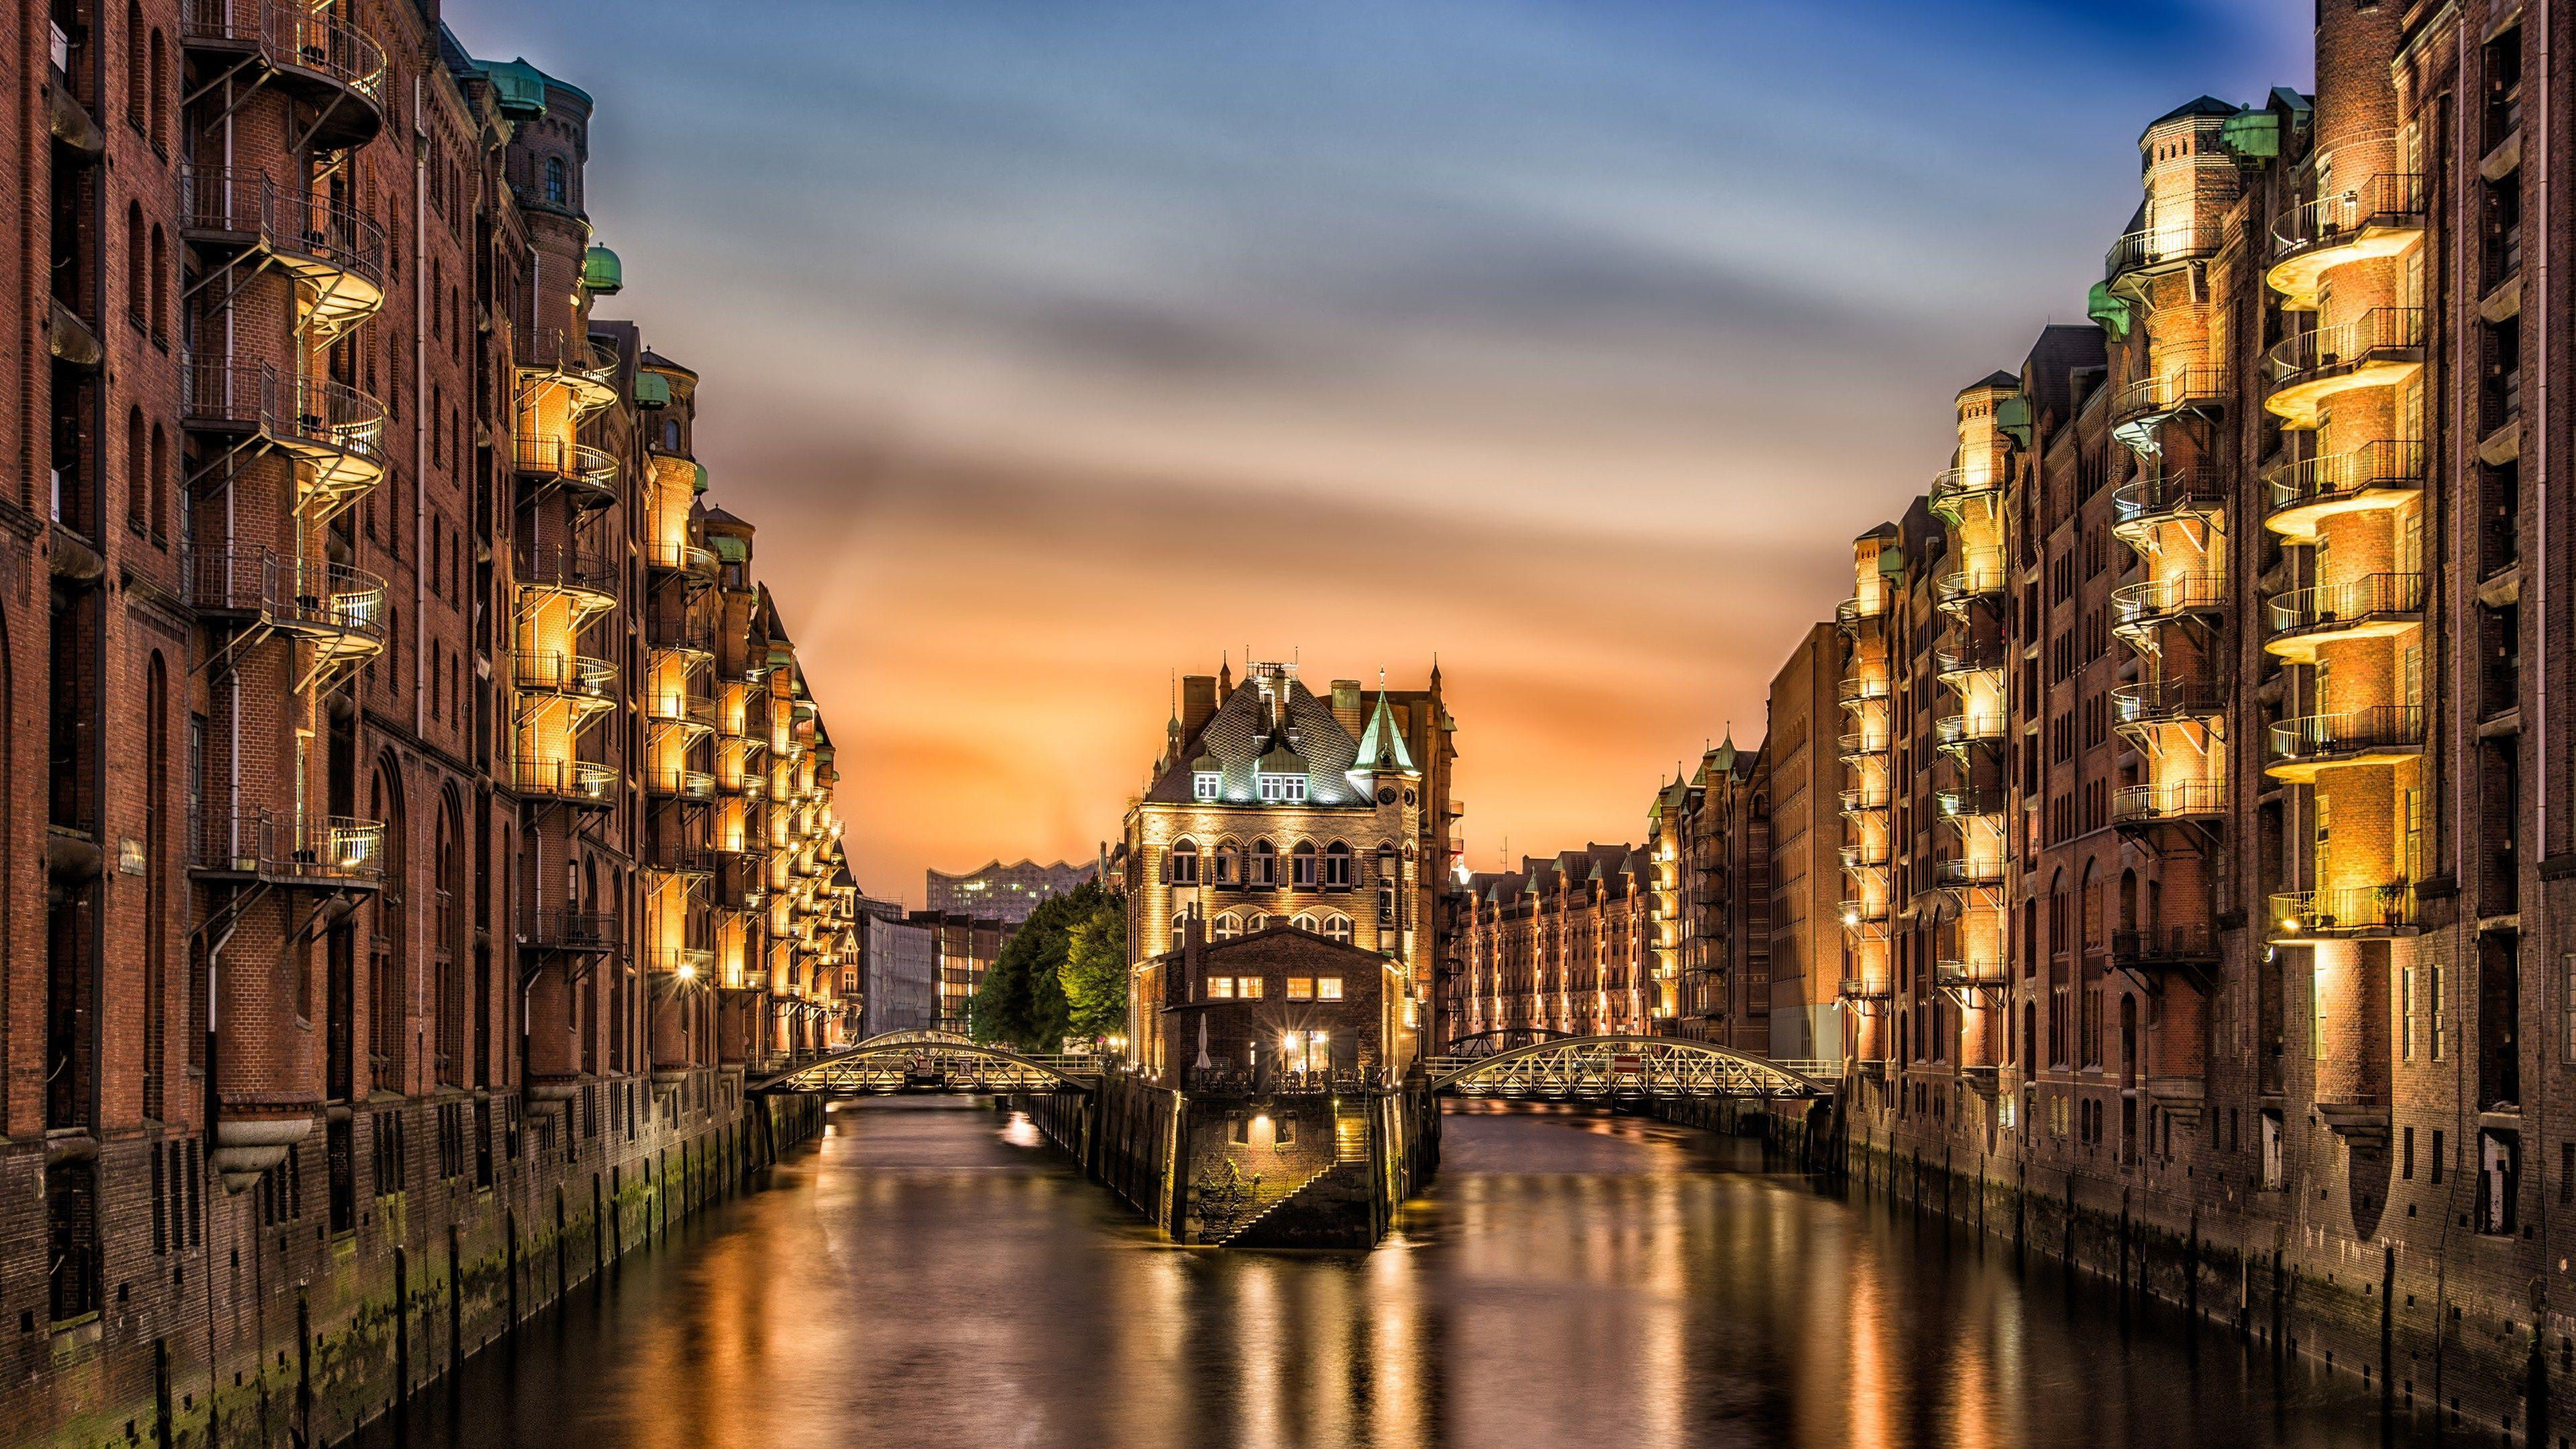 21 Hamburg HD Wallpapers | Backgrounds - Wallpaper Abyss